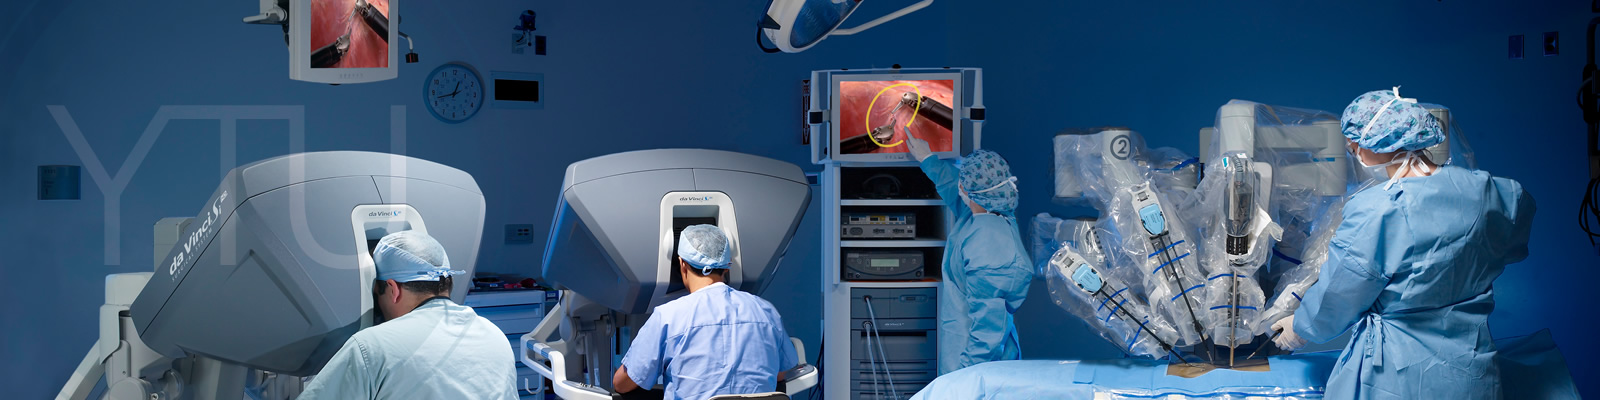 Urologists in York Pennsylvania